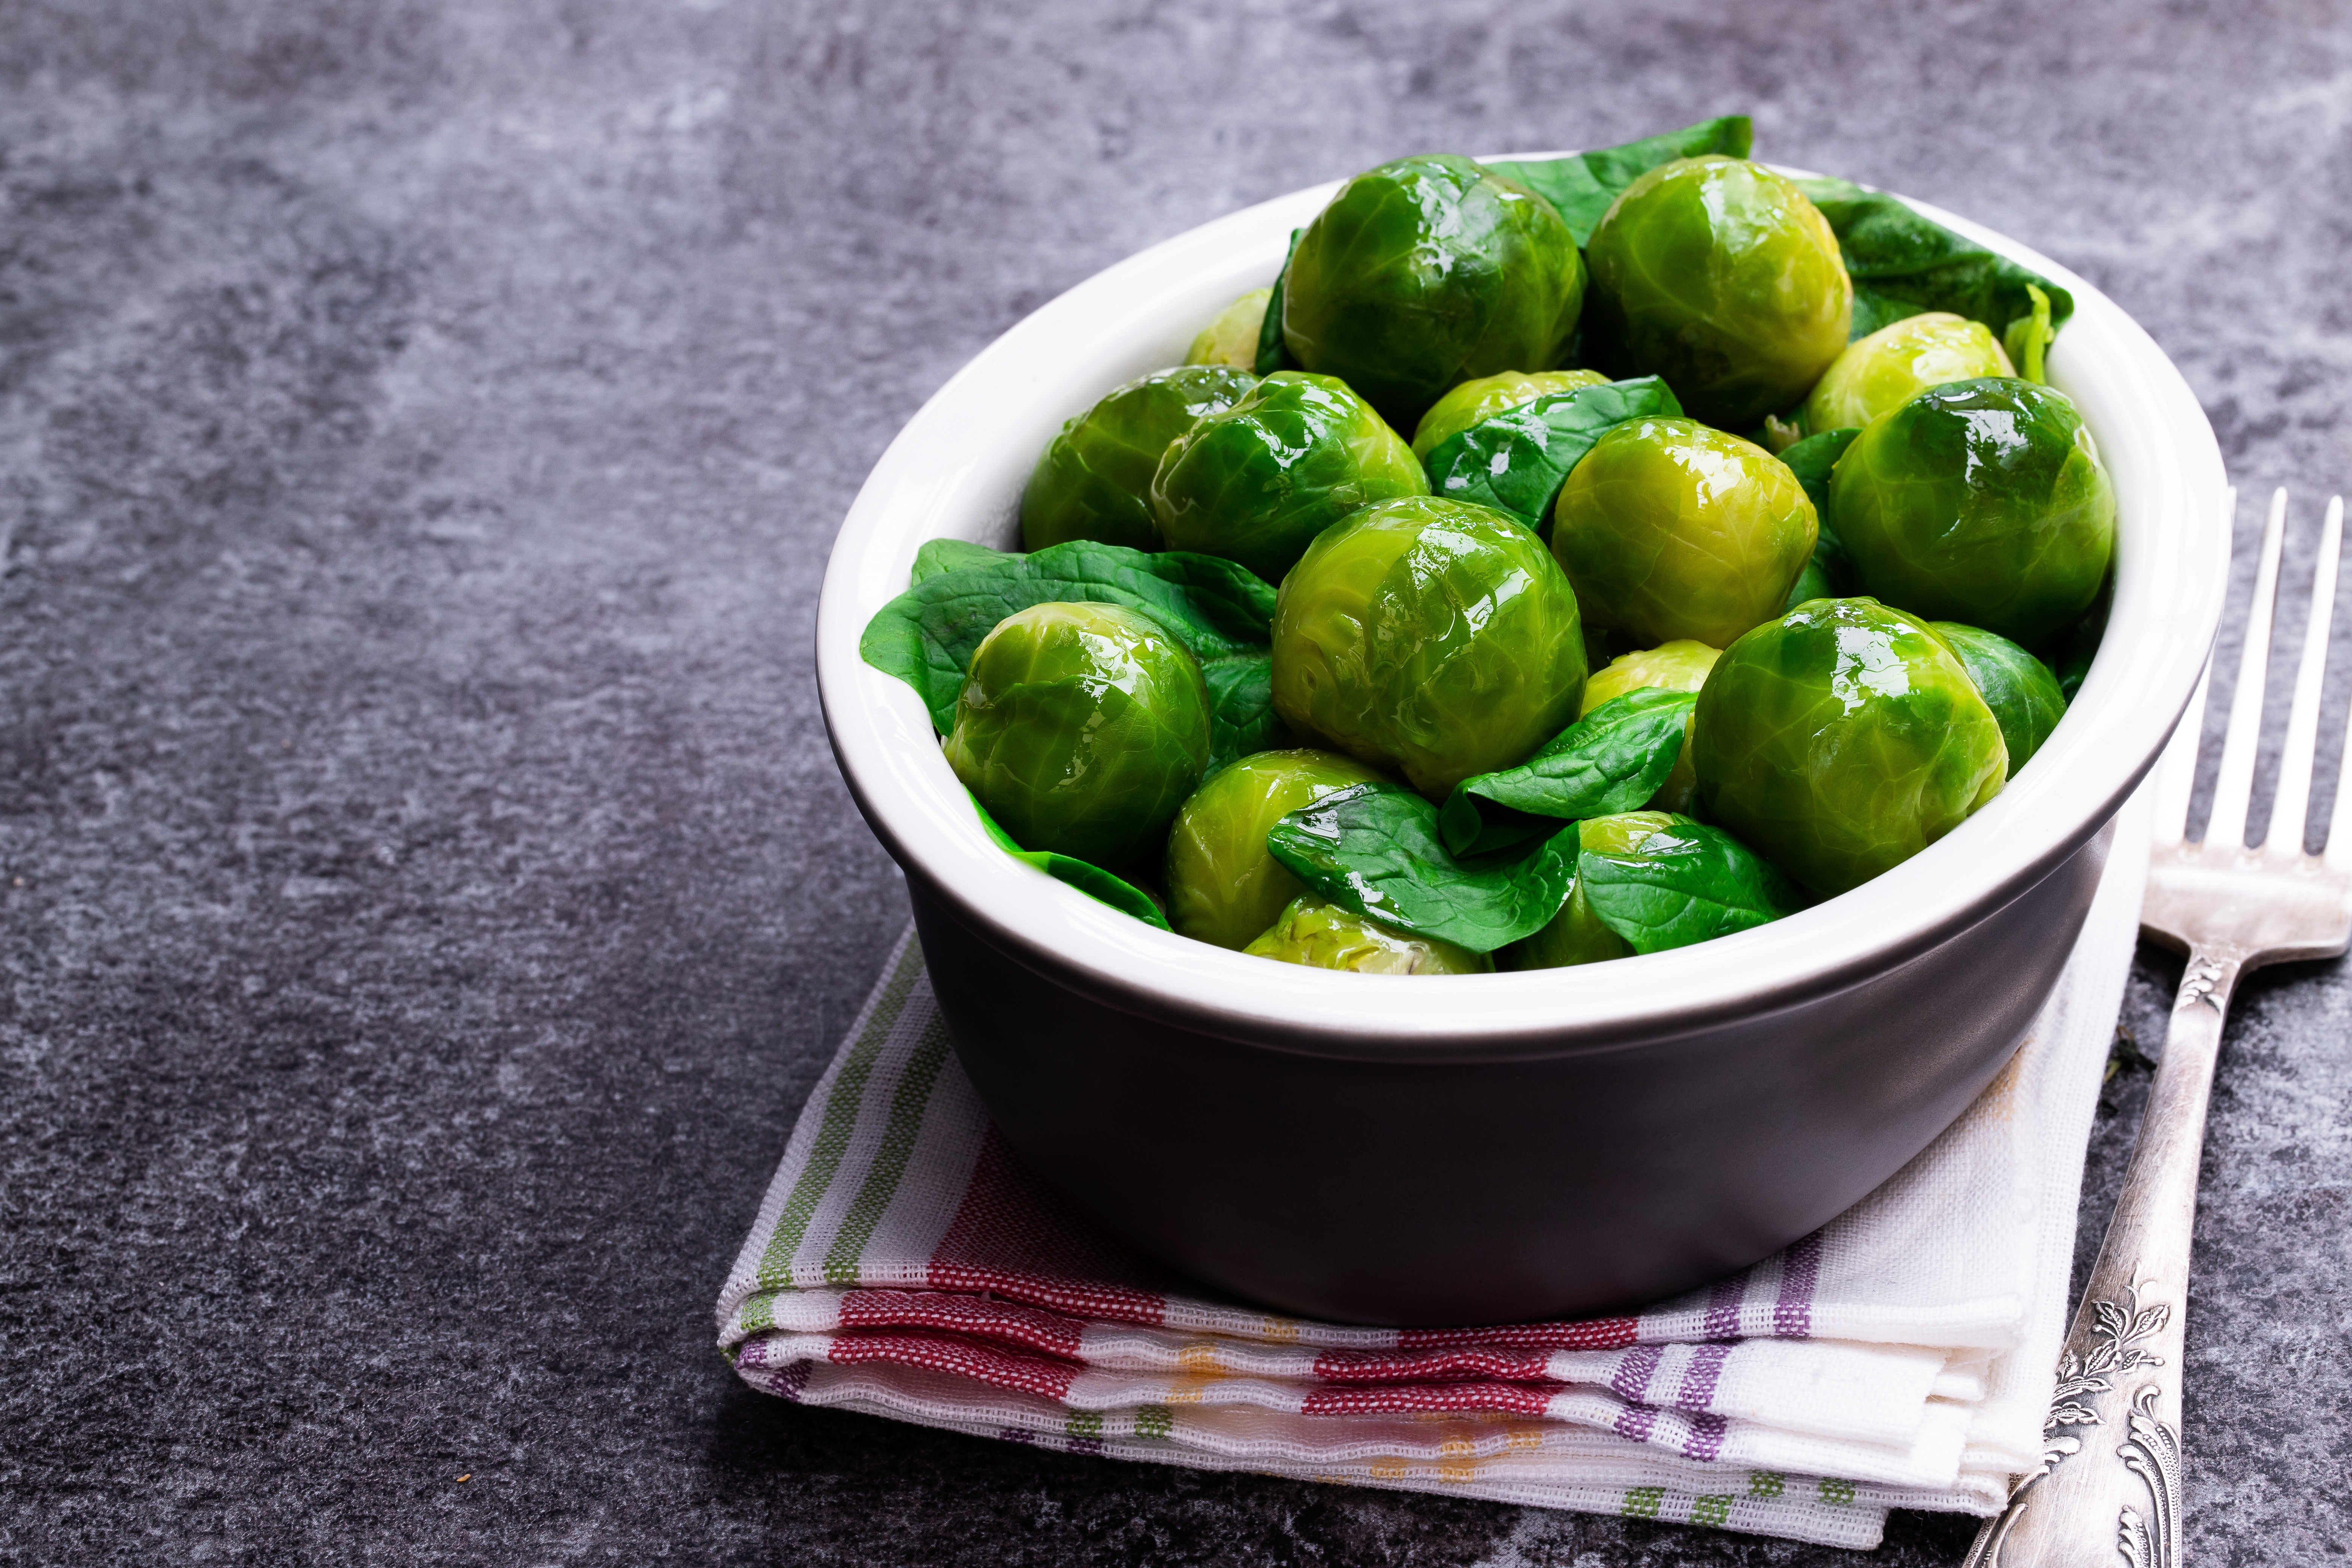 Cooked  brussels sprouts with spinach on gray table